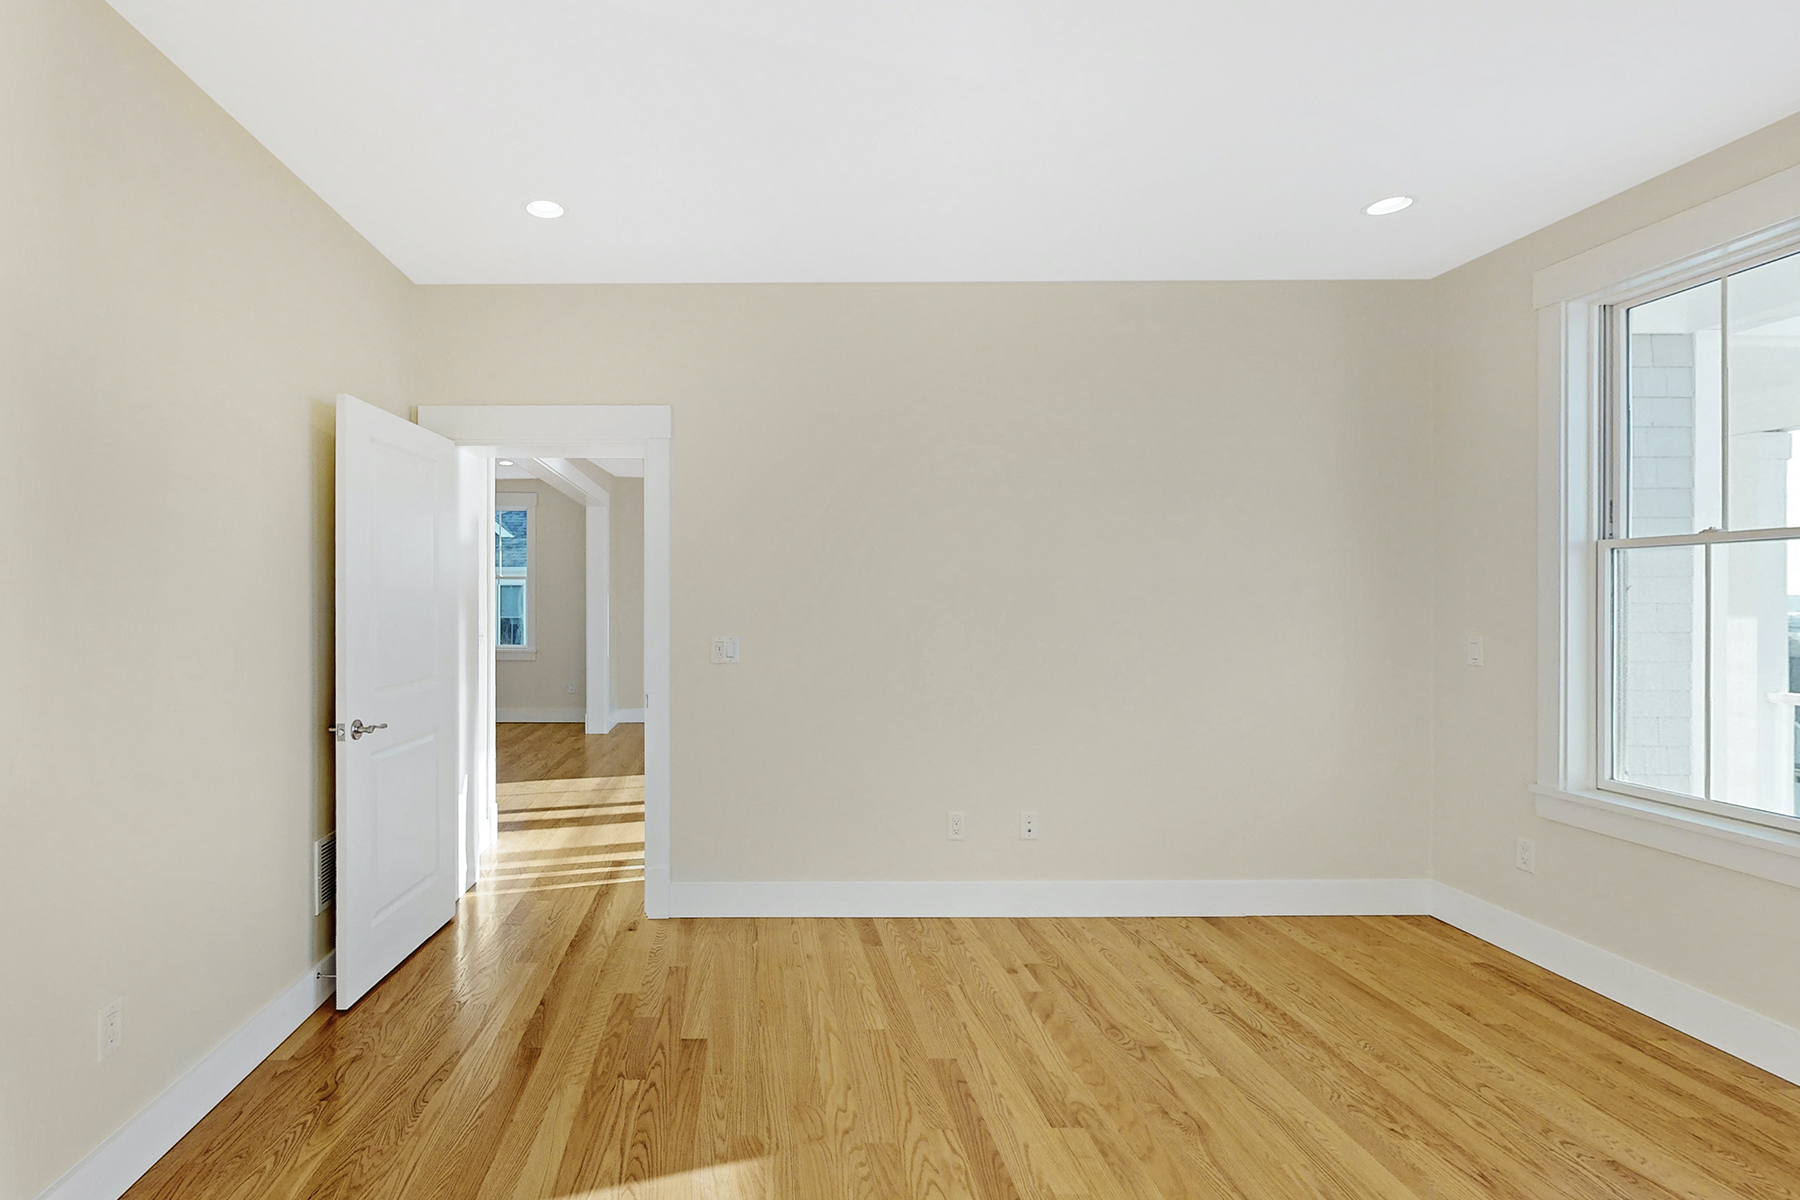 Additional photo for property listing at Luxury Condo New Construction 13 Whaleback Road Tiverton, Rhode Island 02878 United States